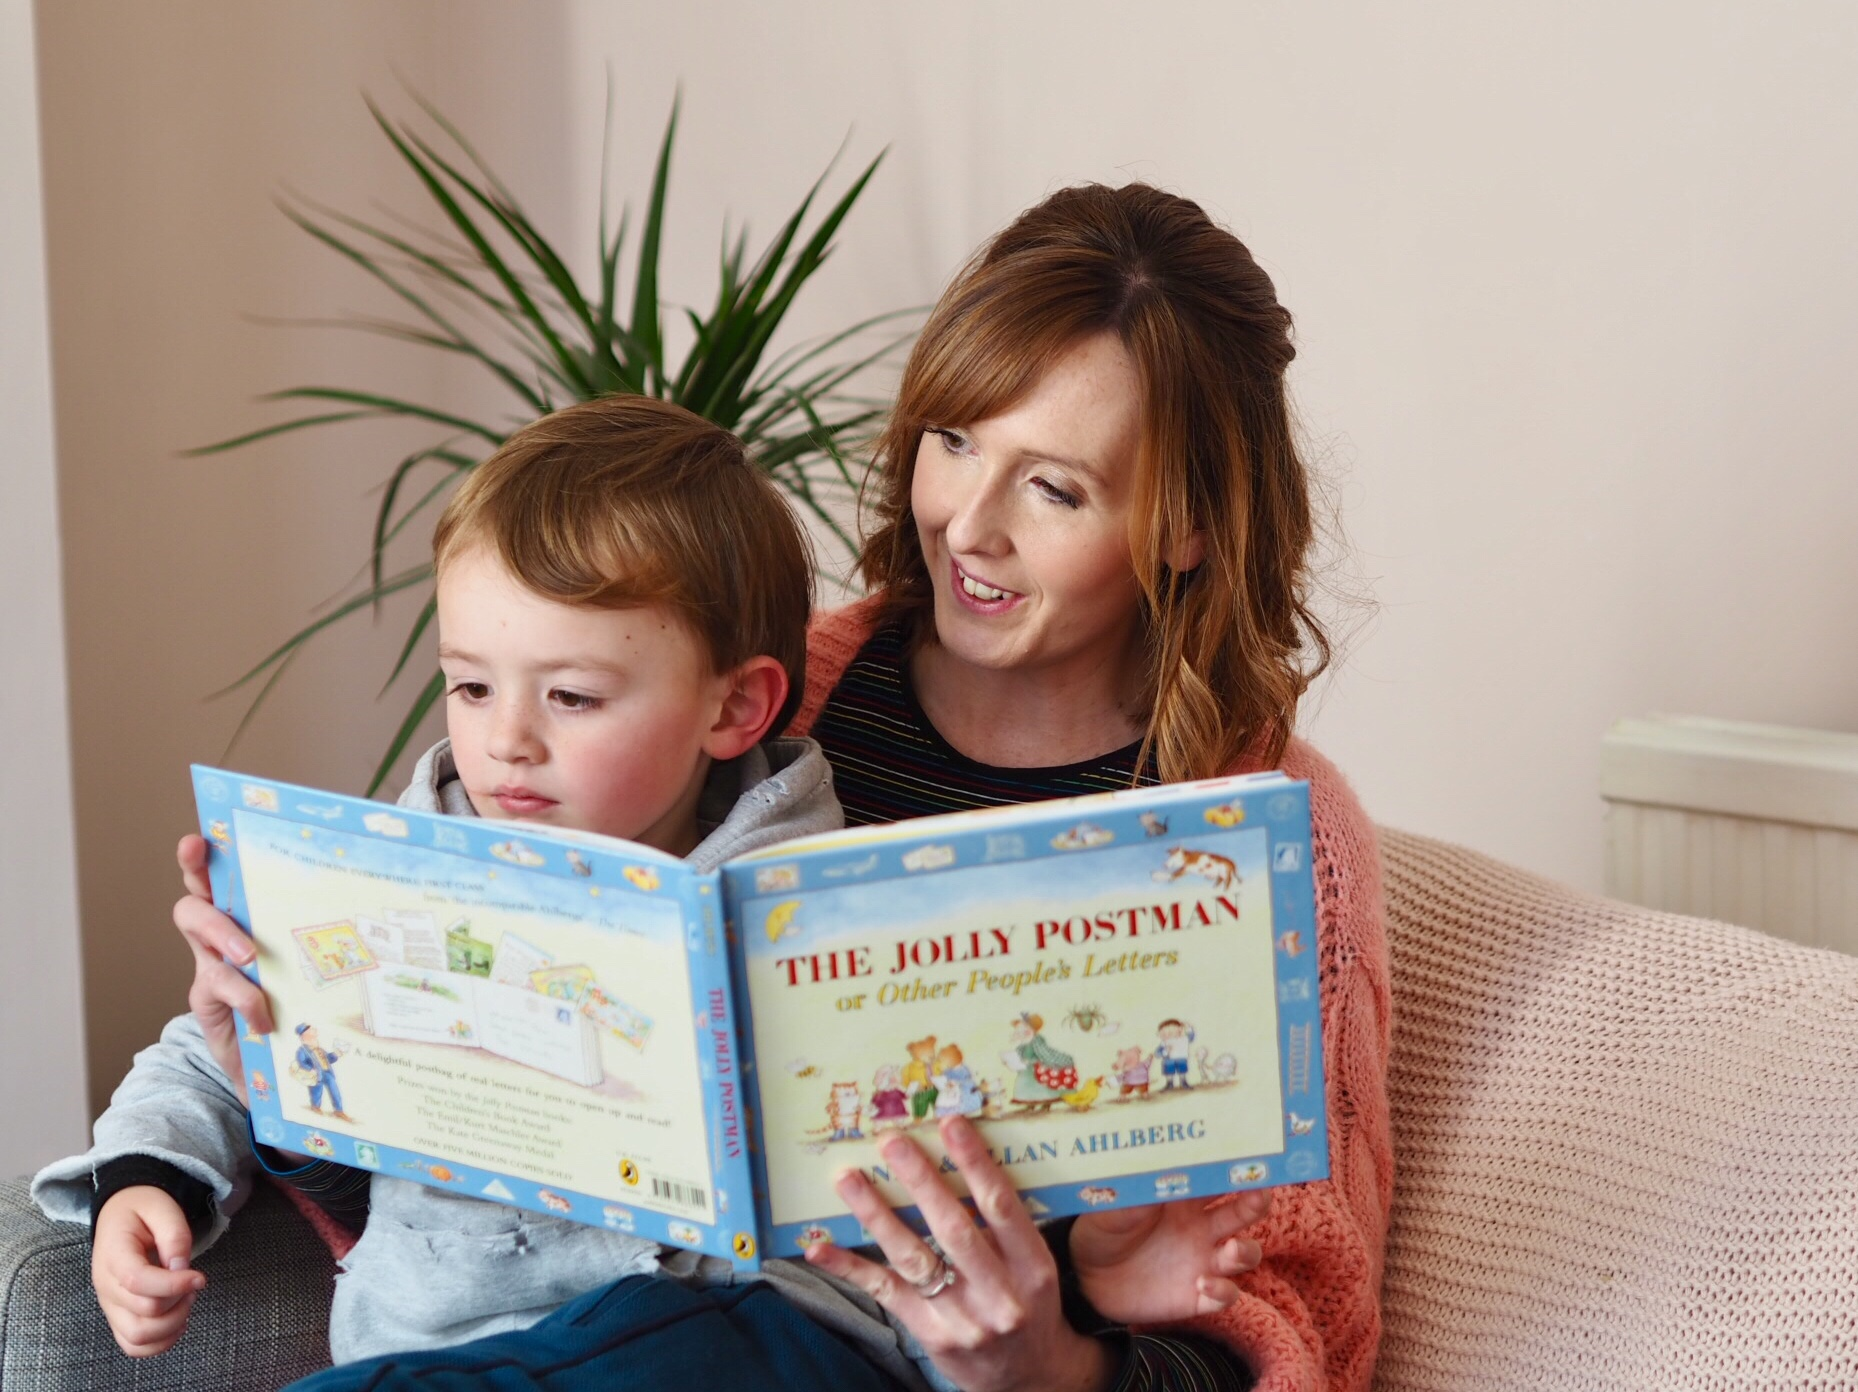 (AD) Sharing a love of reading ahead of World Book Day